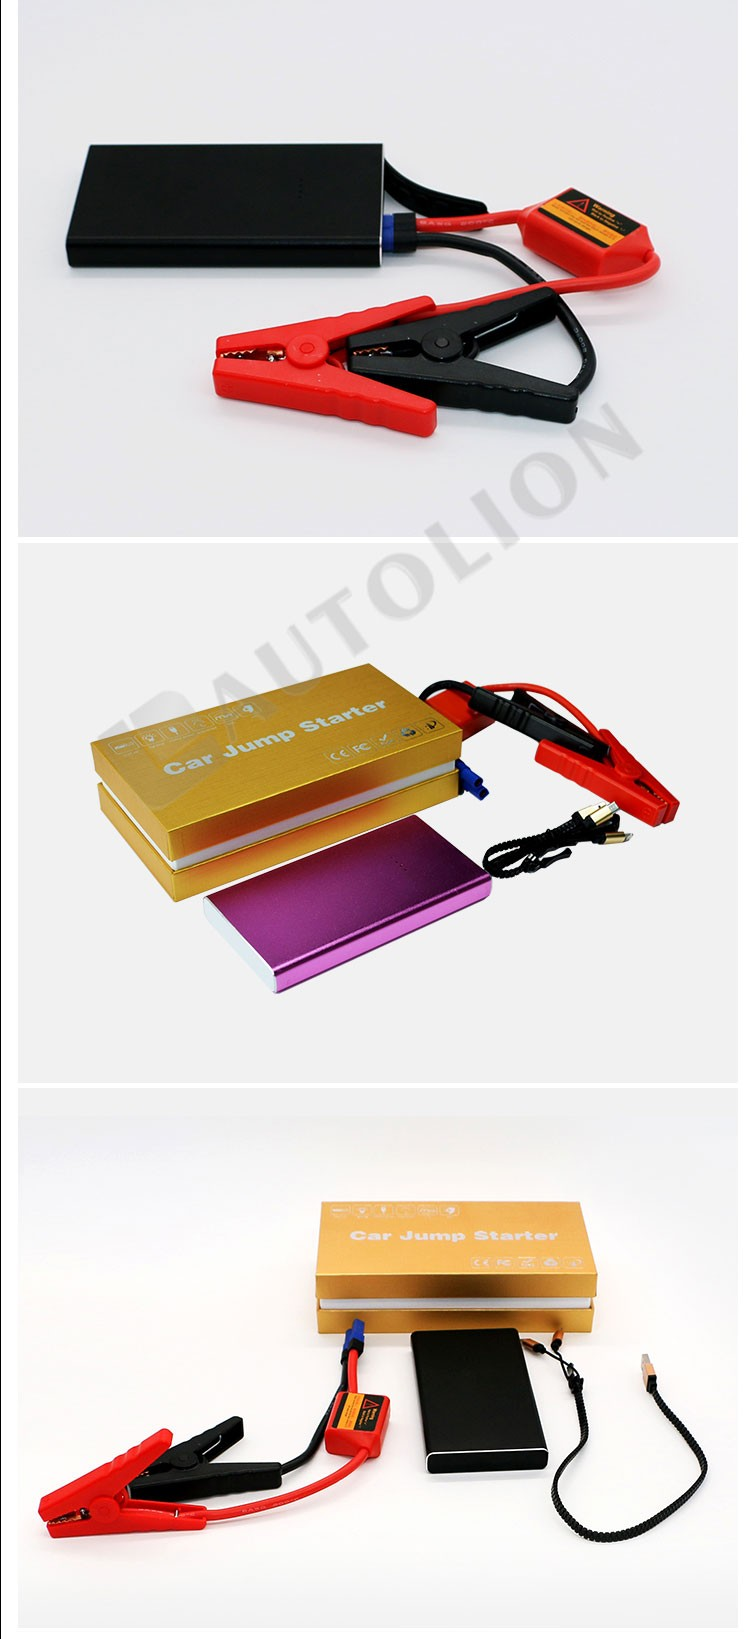 Waterproof super slim jump starter emergency tool mini booster